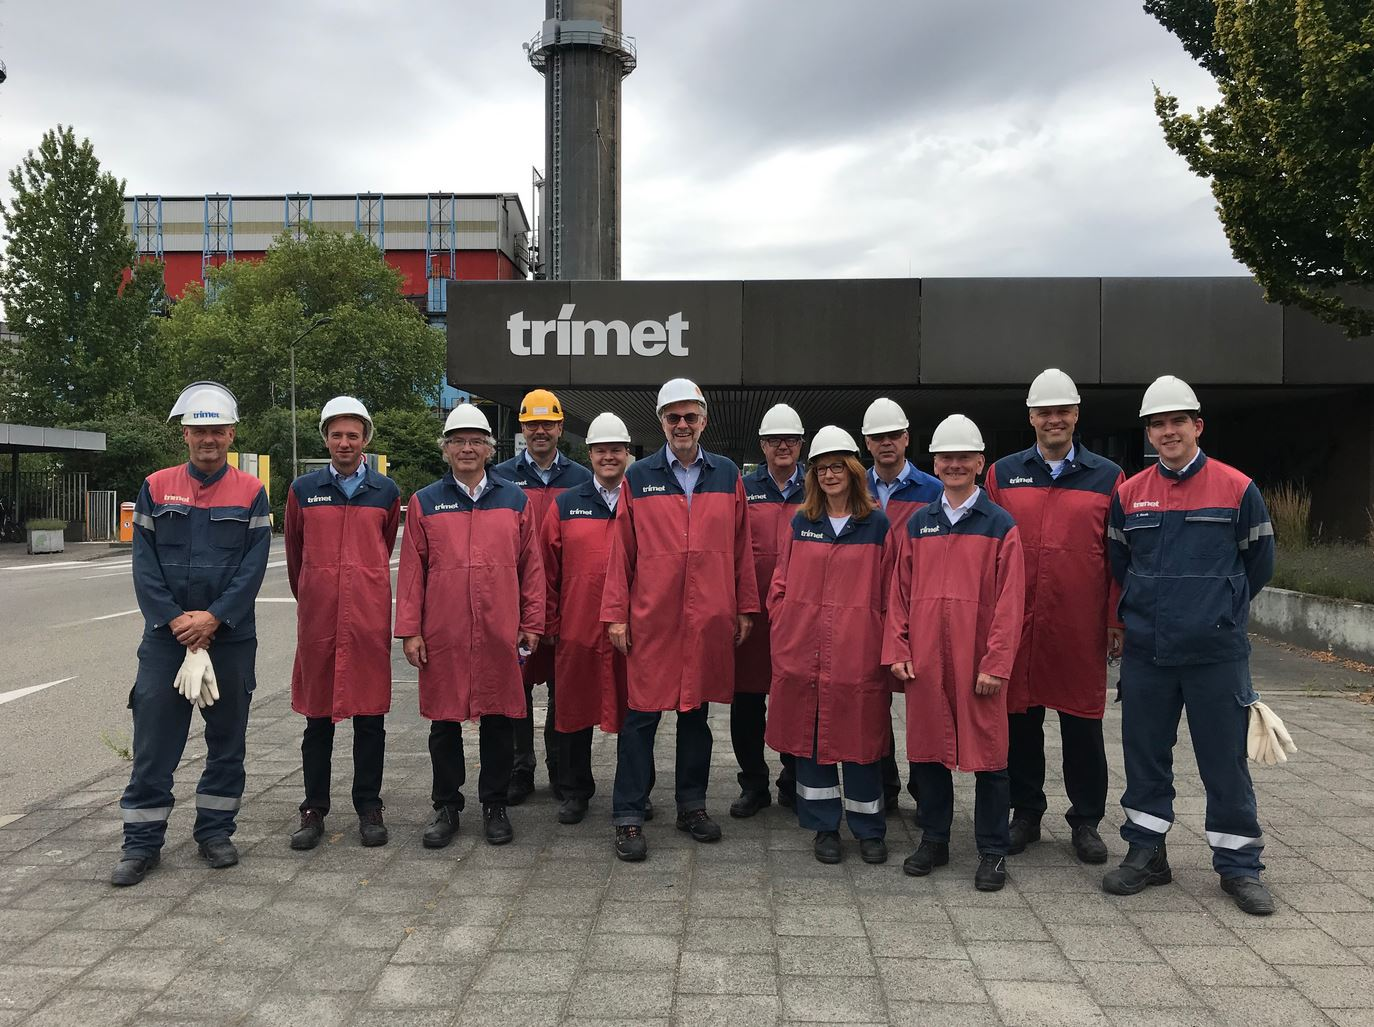 trimet kick off - 07.2019 Kick-off for 200kA superconducting busbar